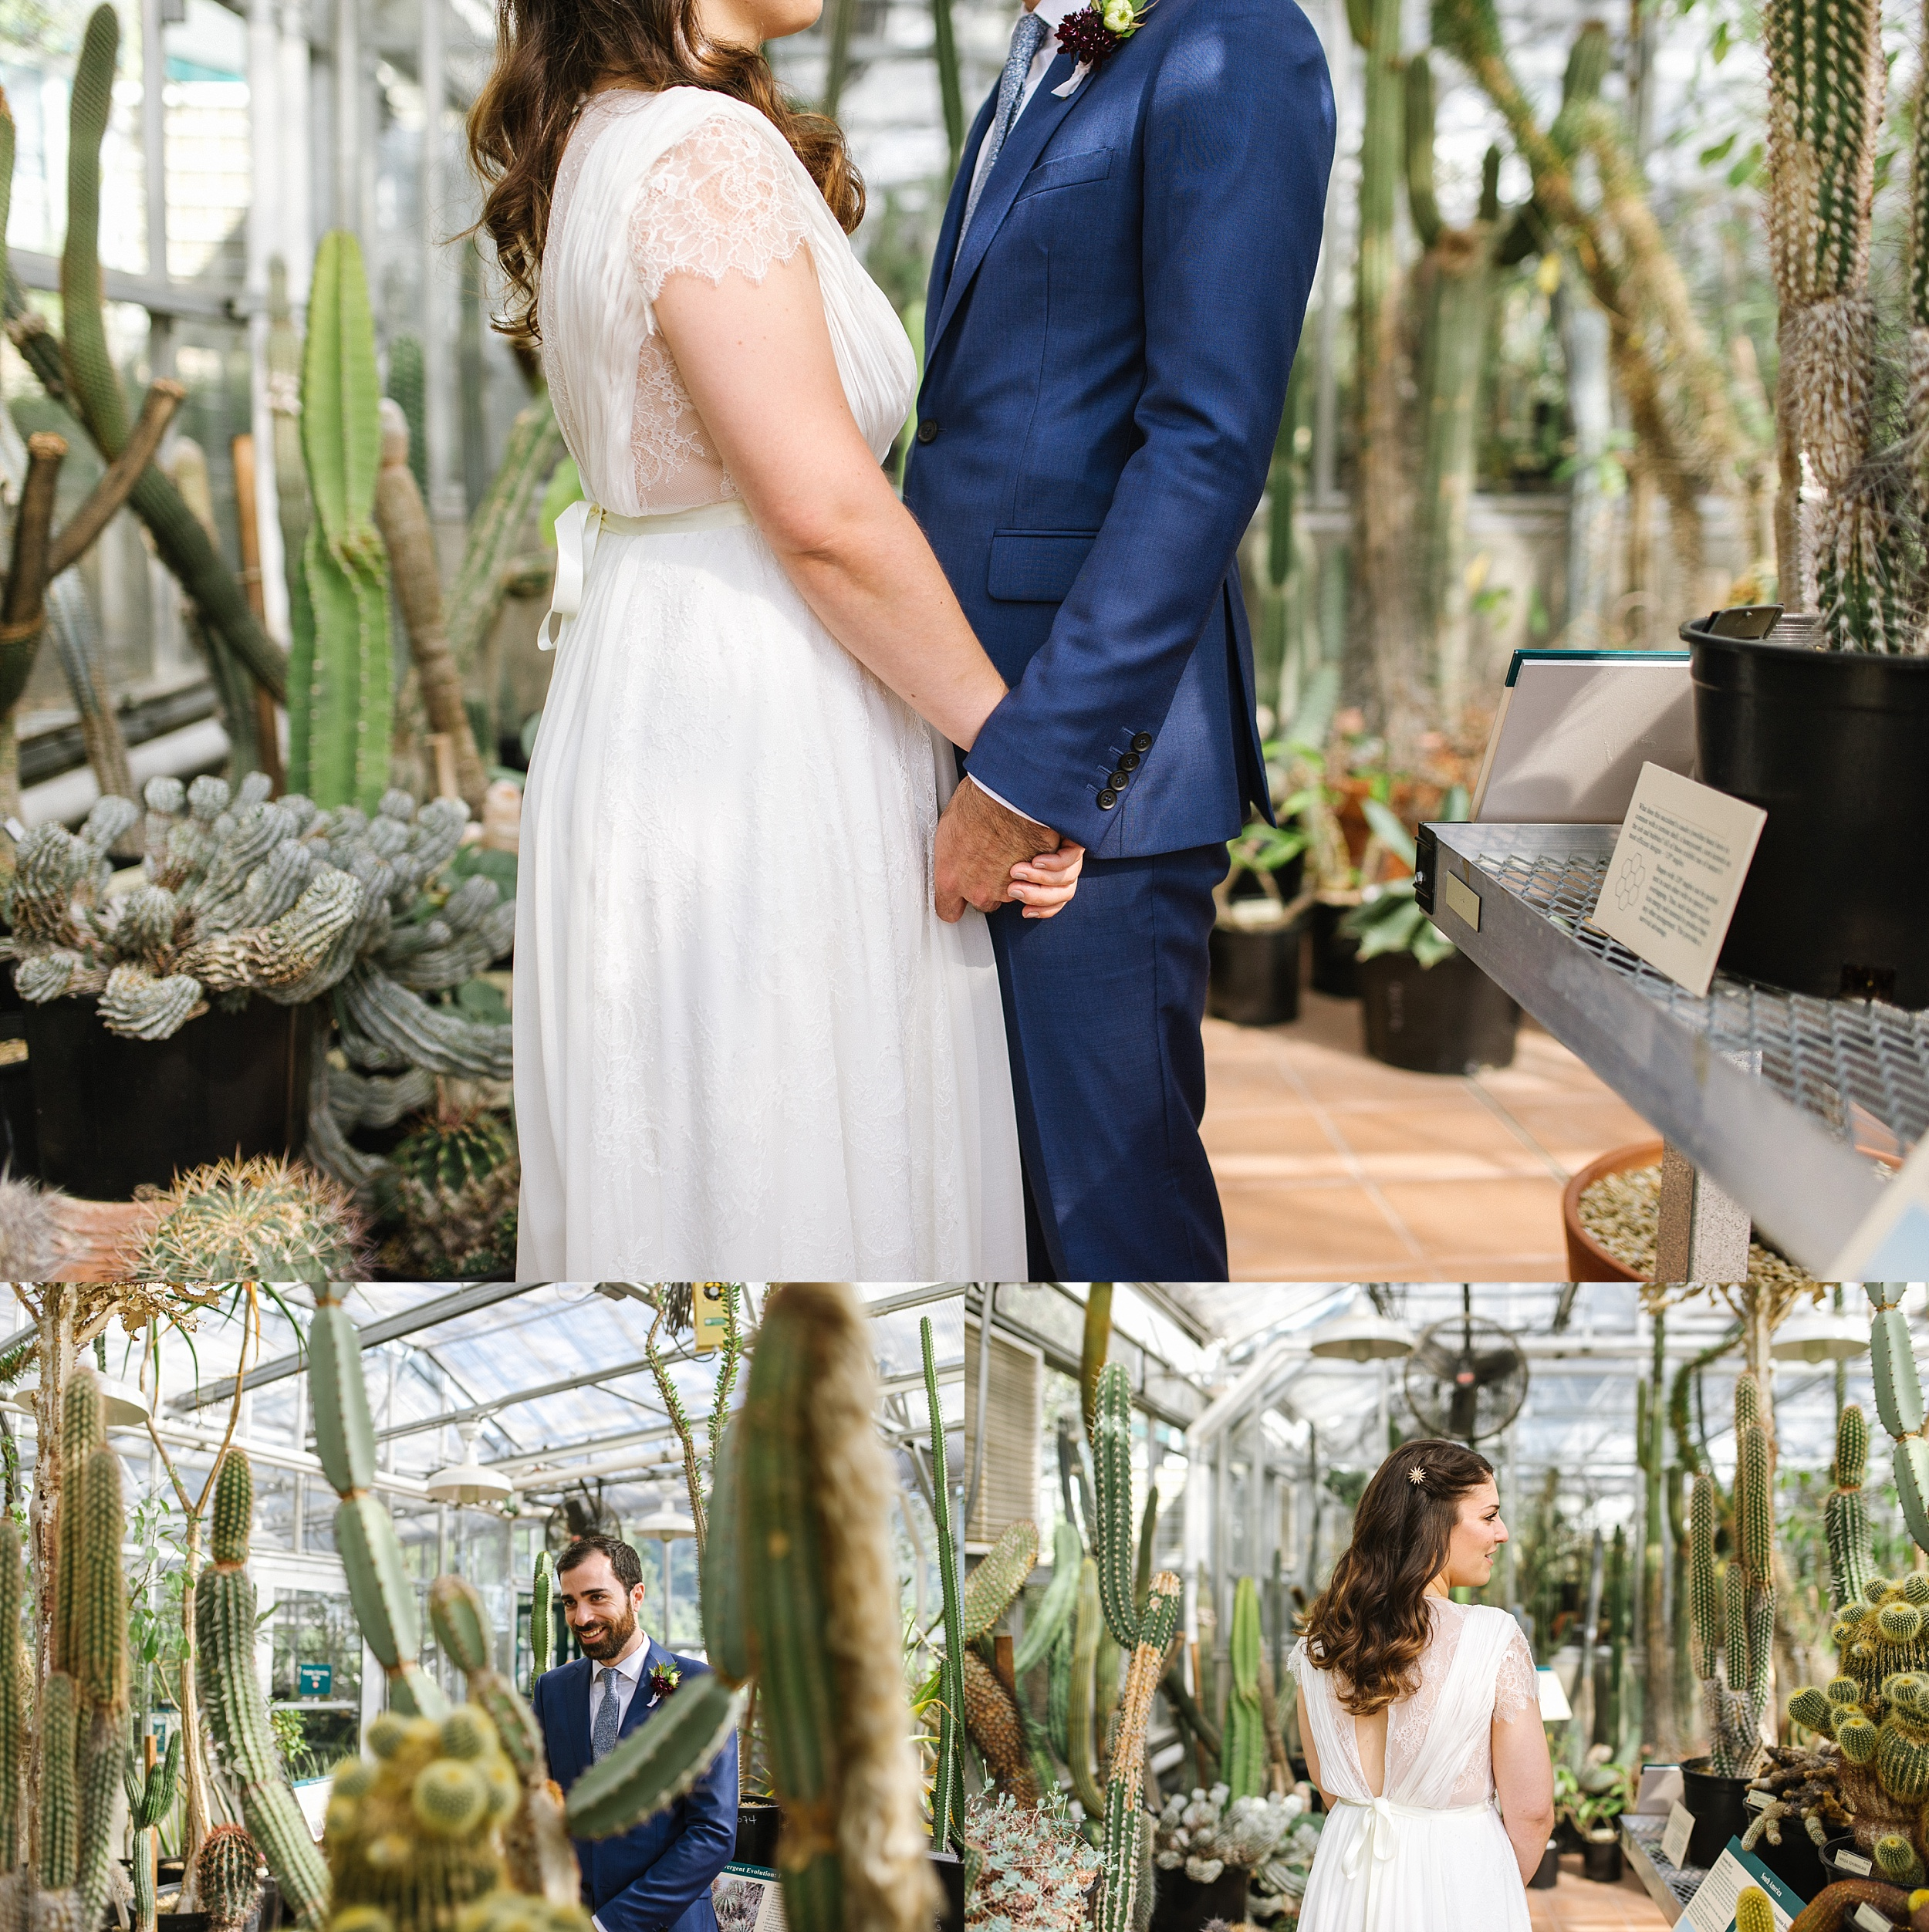 noahhannah_redwoods_botanical_wedding_berkeley_cdp_0057.jpg